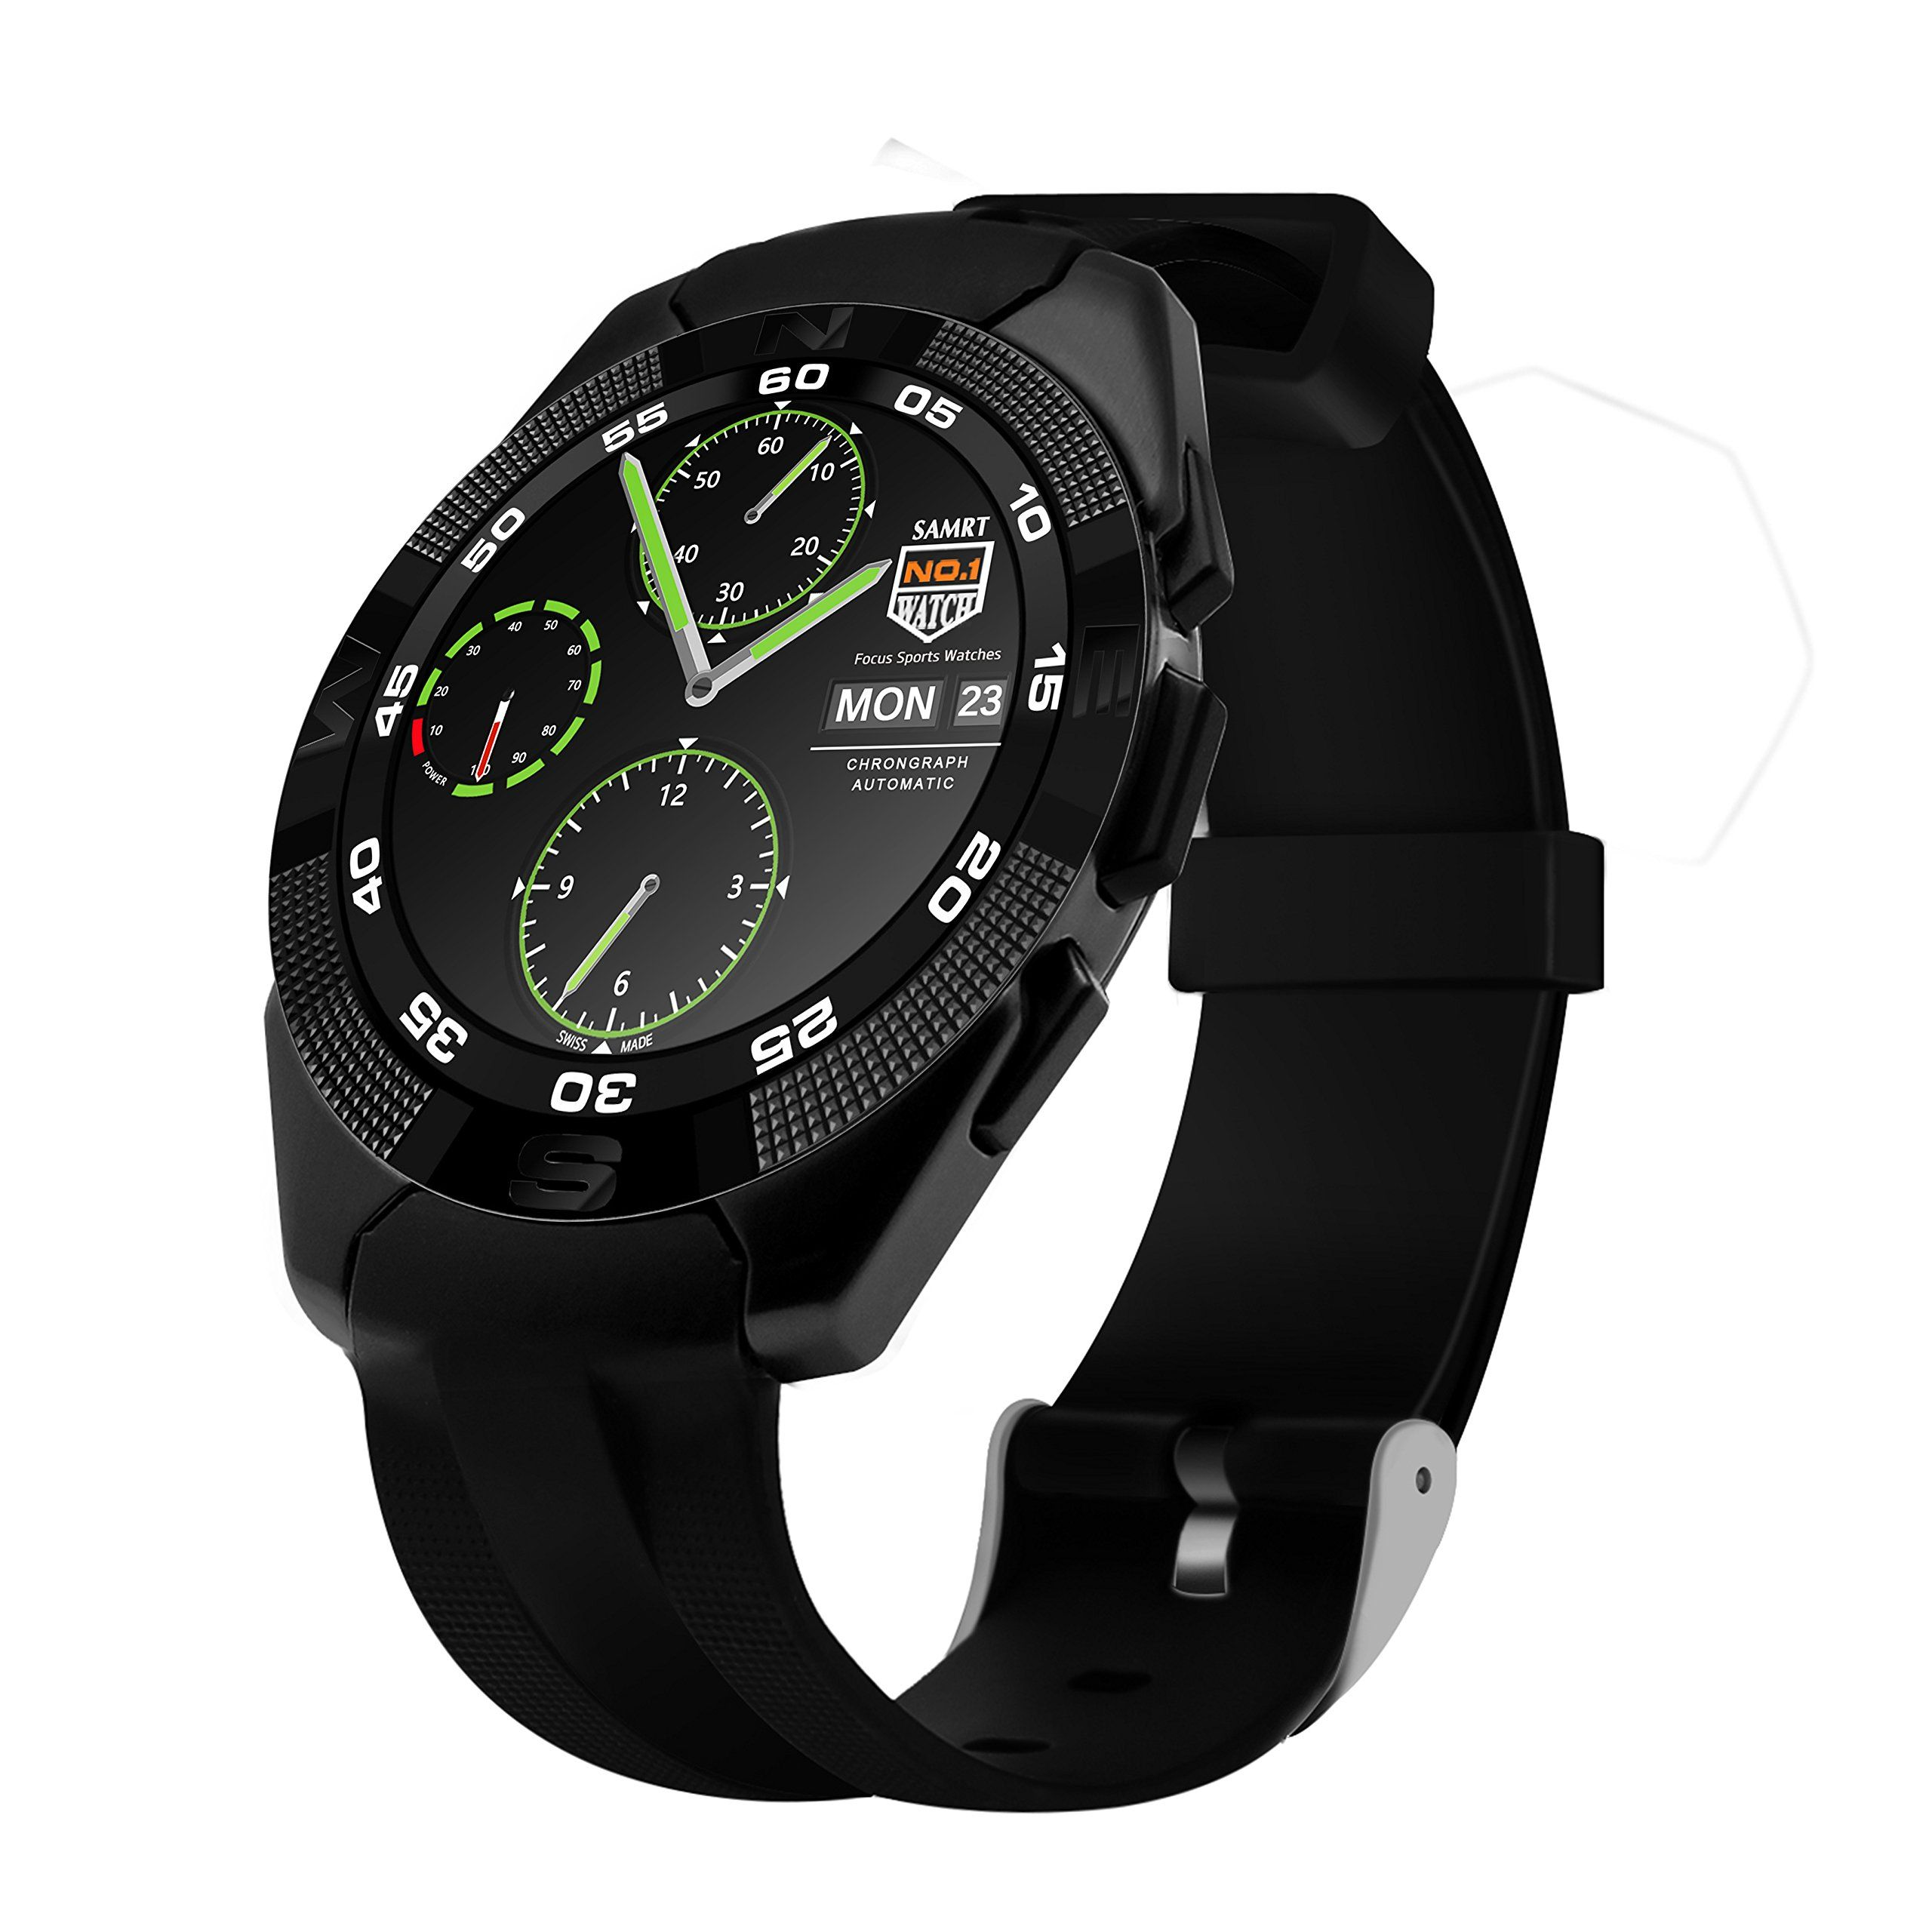 joliwow 2017 new g5 smart watch android mtk2502 sport wristwatch